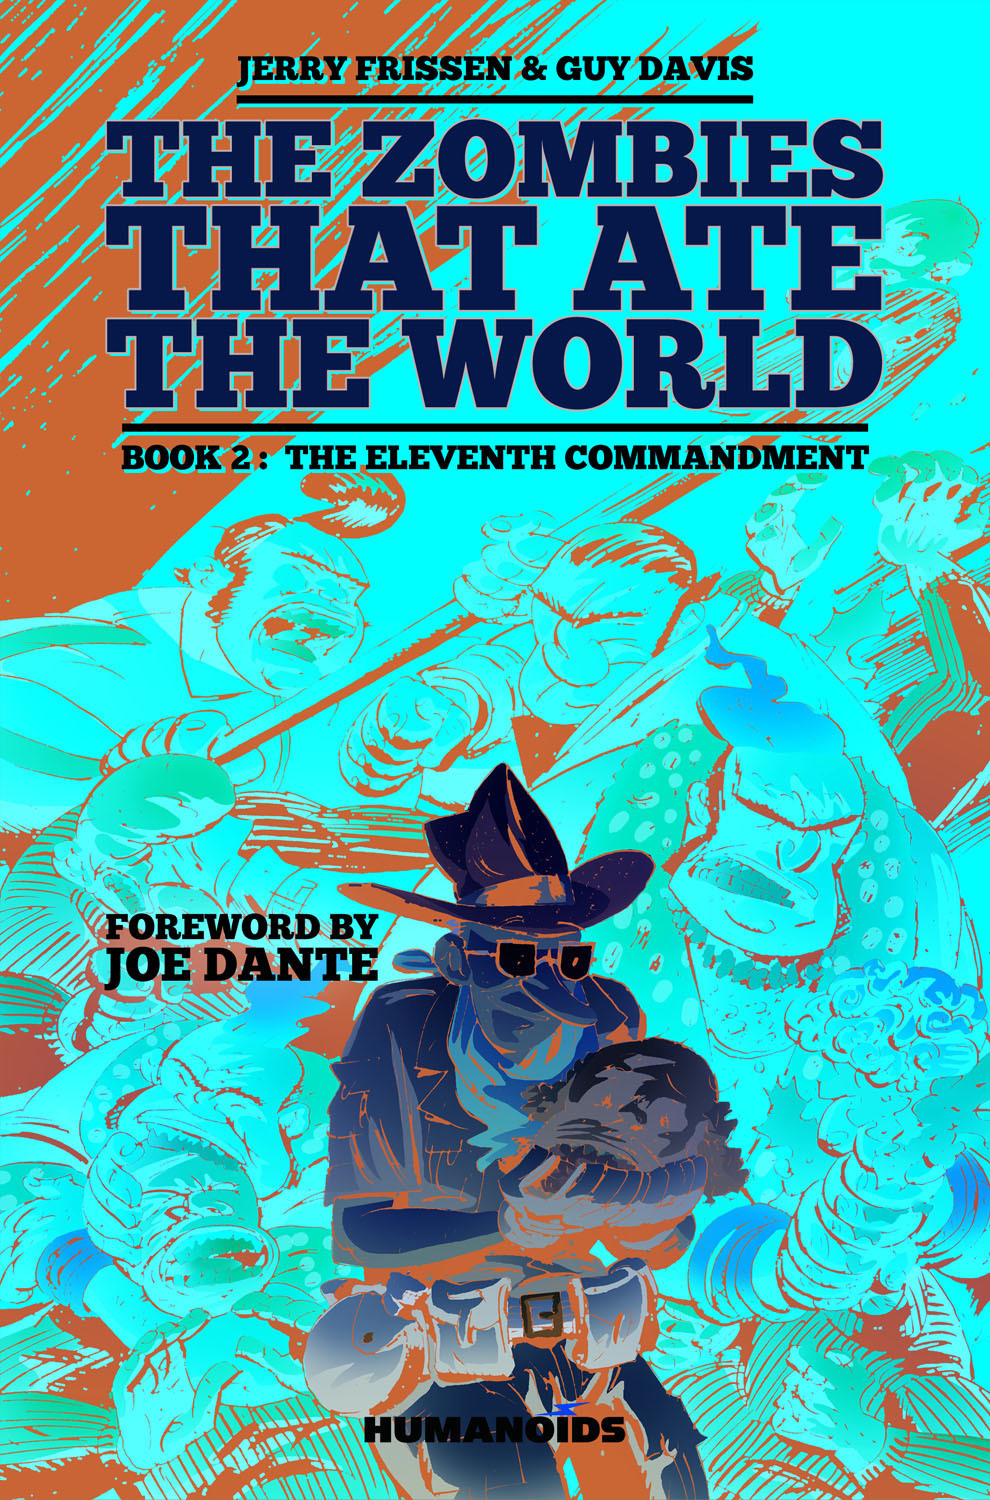 The Zombies that Ate the World - Hardcover Trade : Book 2: The Eleventh Commandment